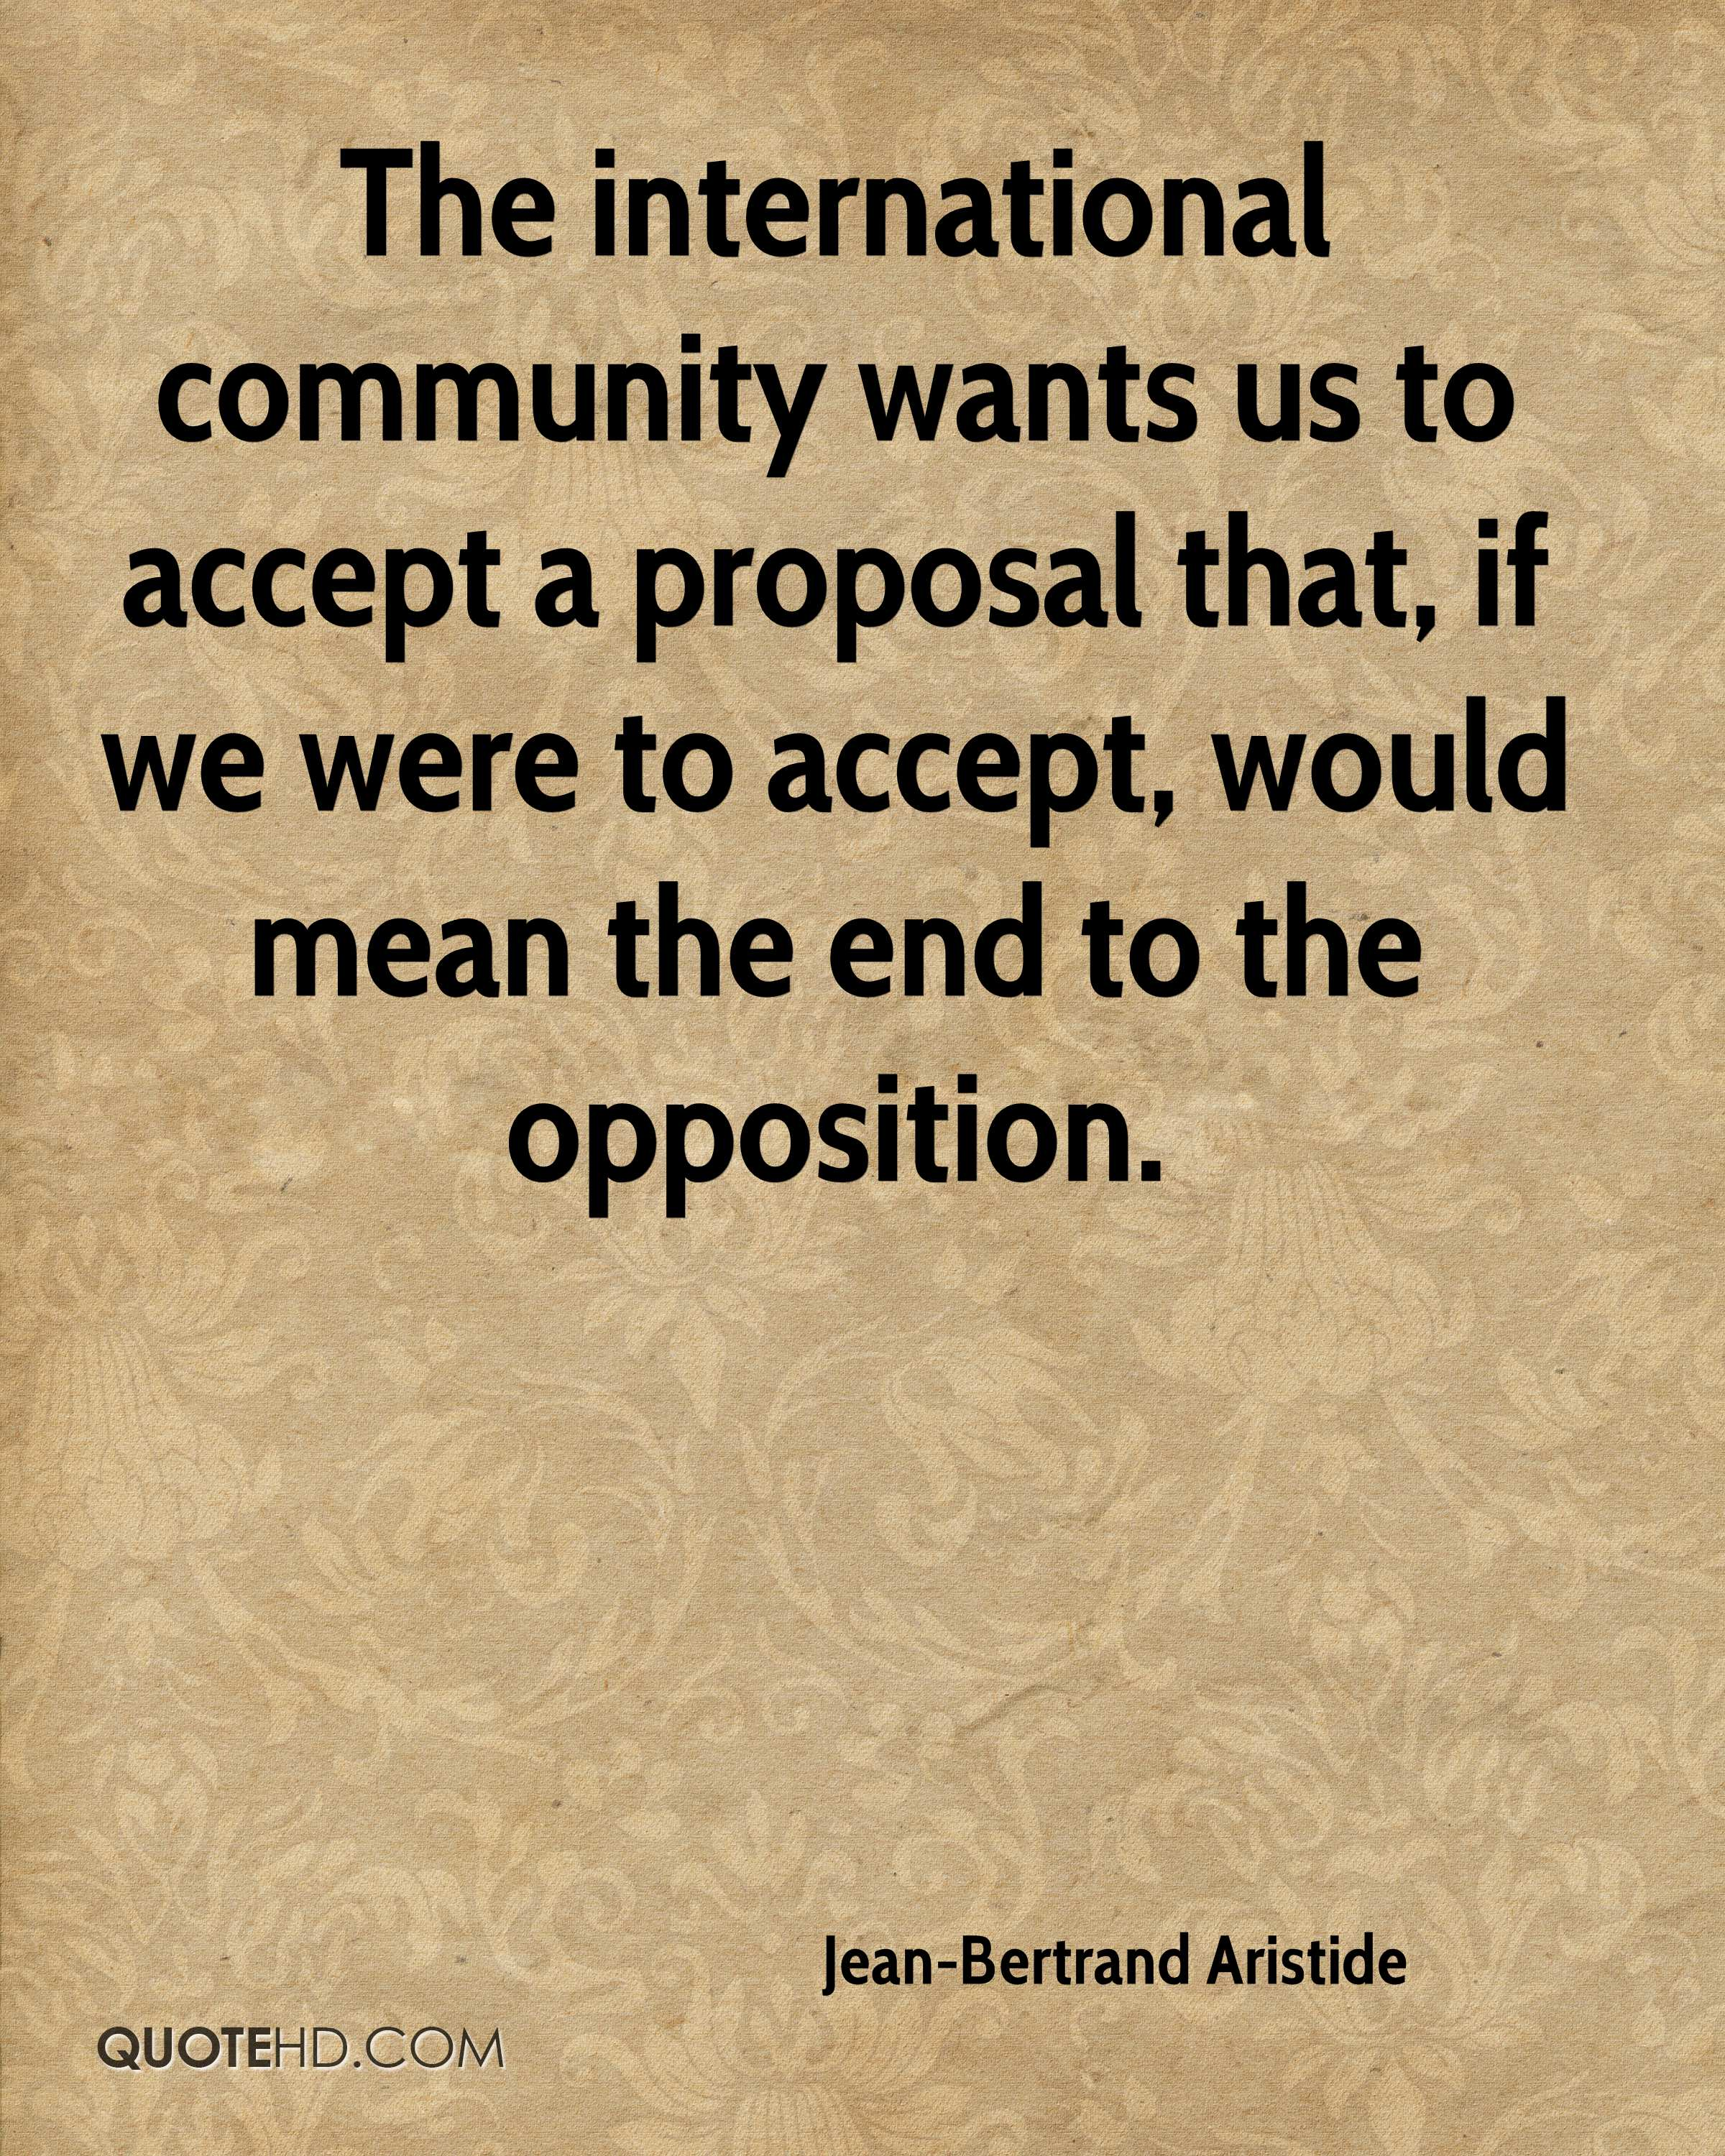 The international community wants us to accept a proposal that, if we were to accept, would mean the end to the opposition.